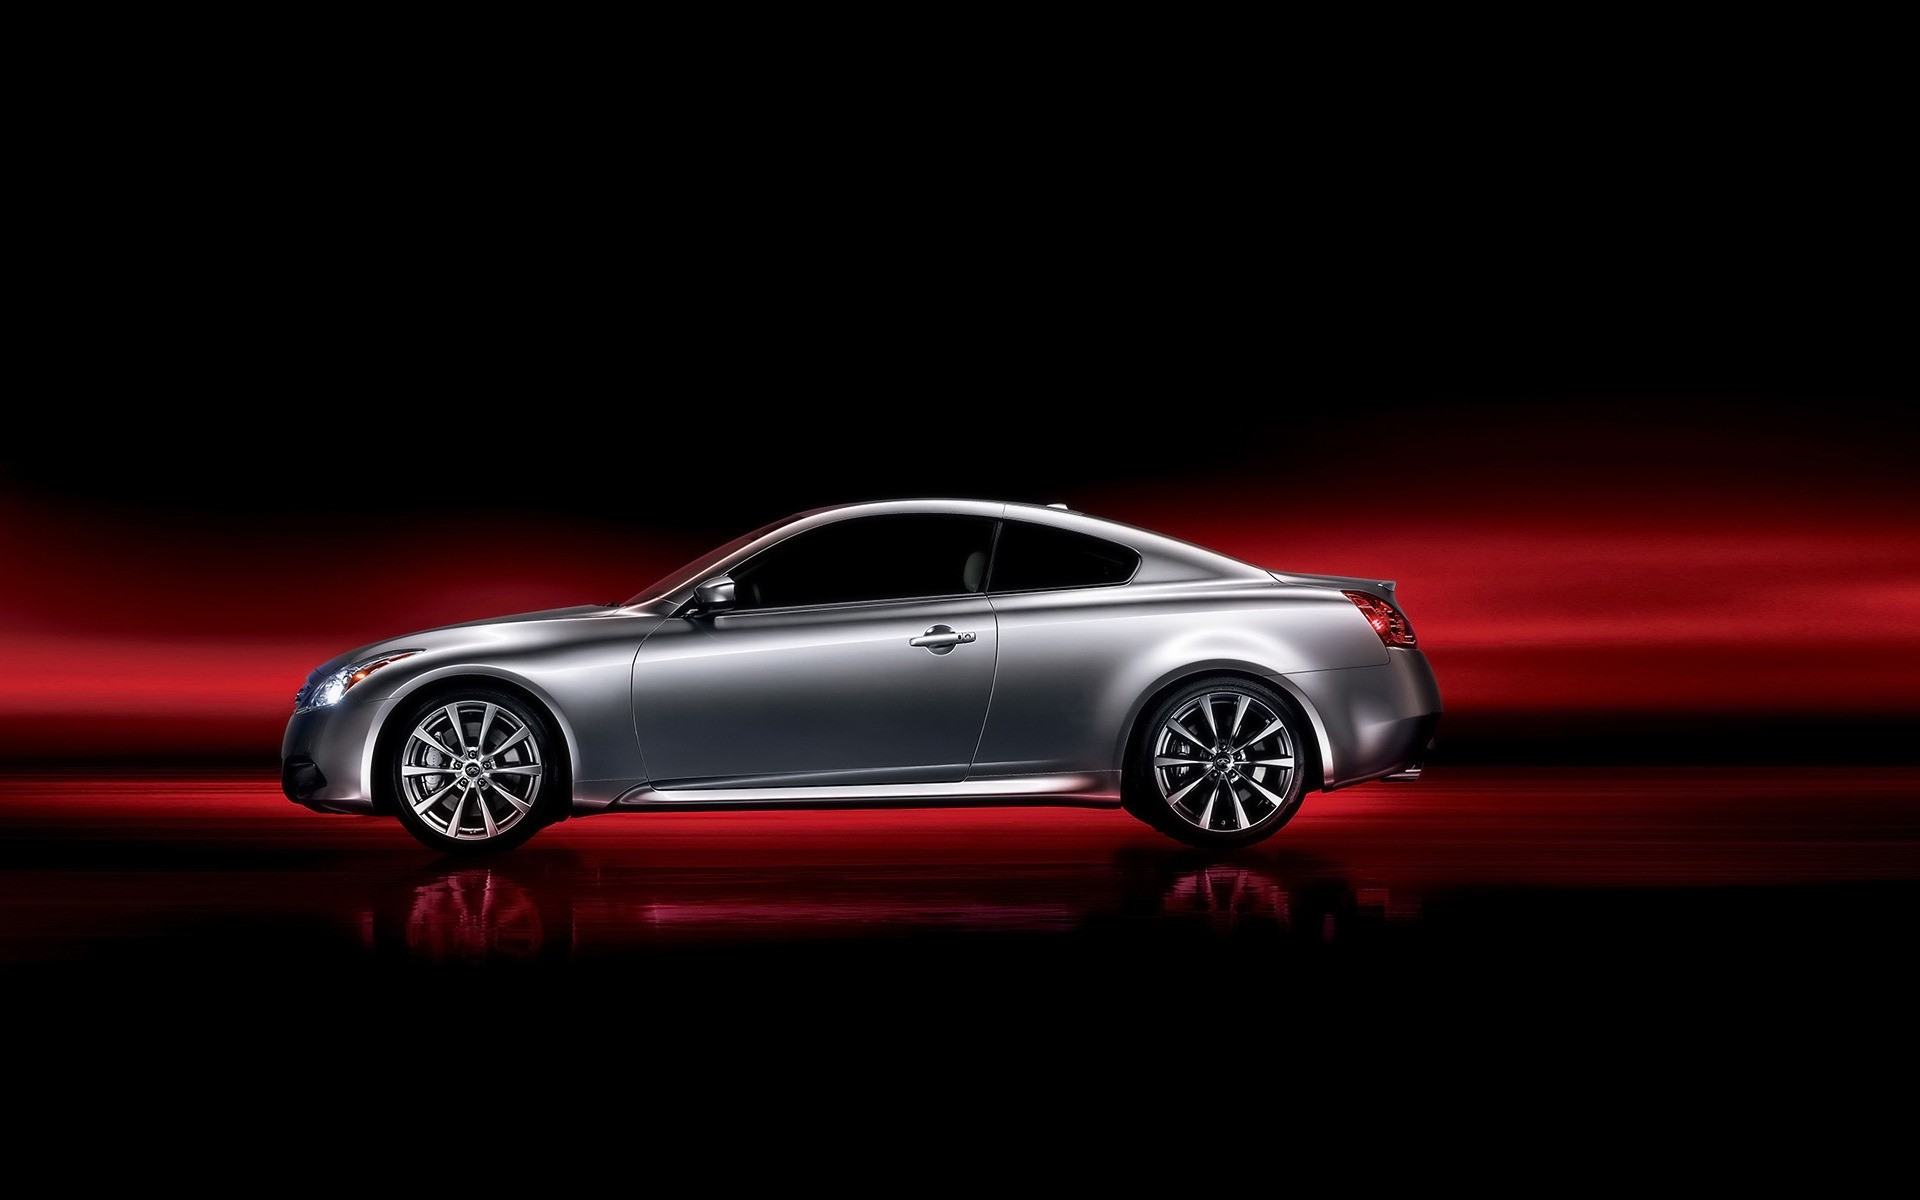 Grey Infiniti G37 Coupe Android Wallpapers